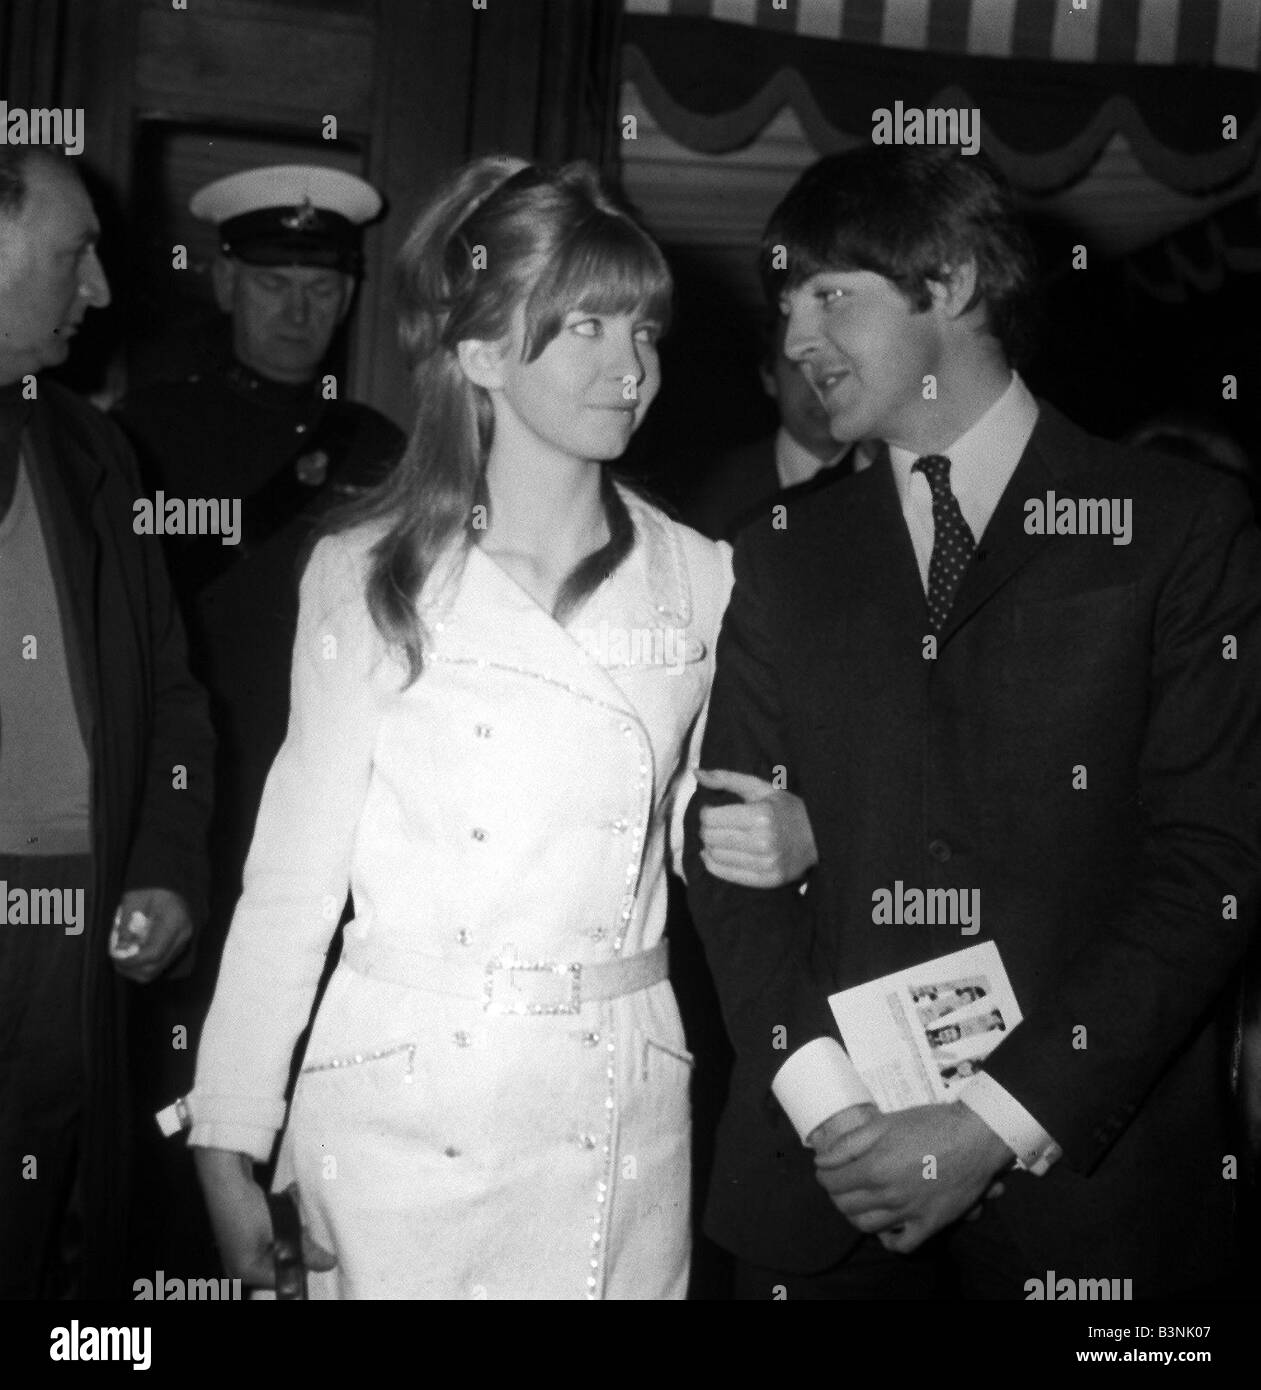 Paul McCartney With Girlfriend Jane Asher March 1966